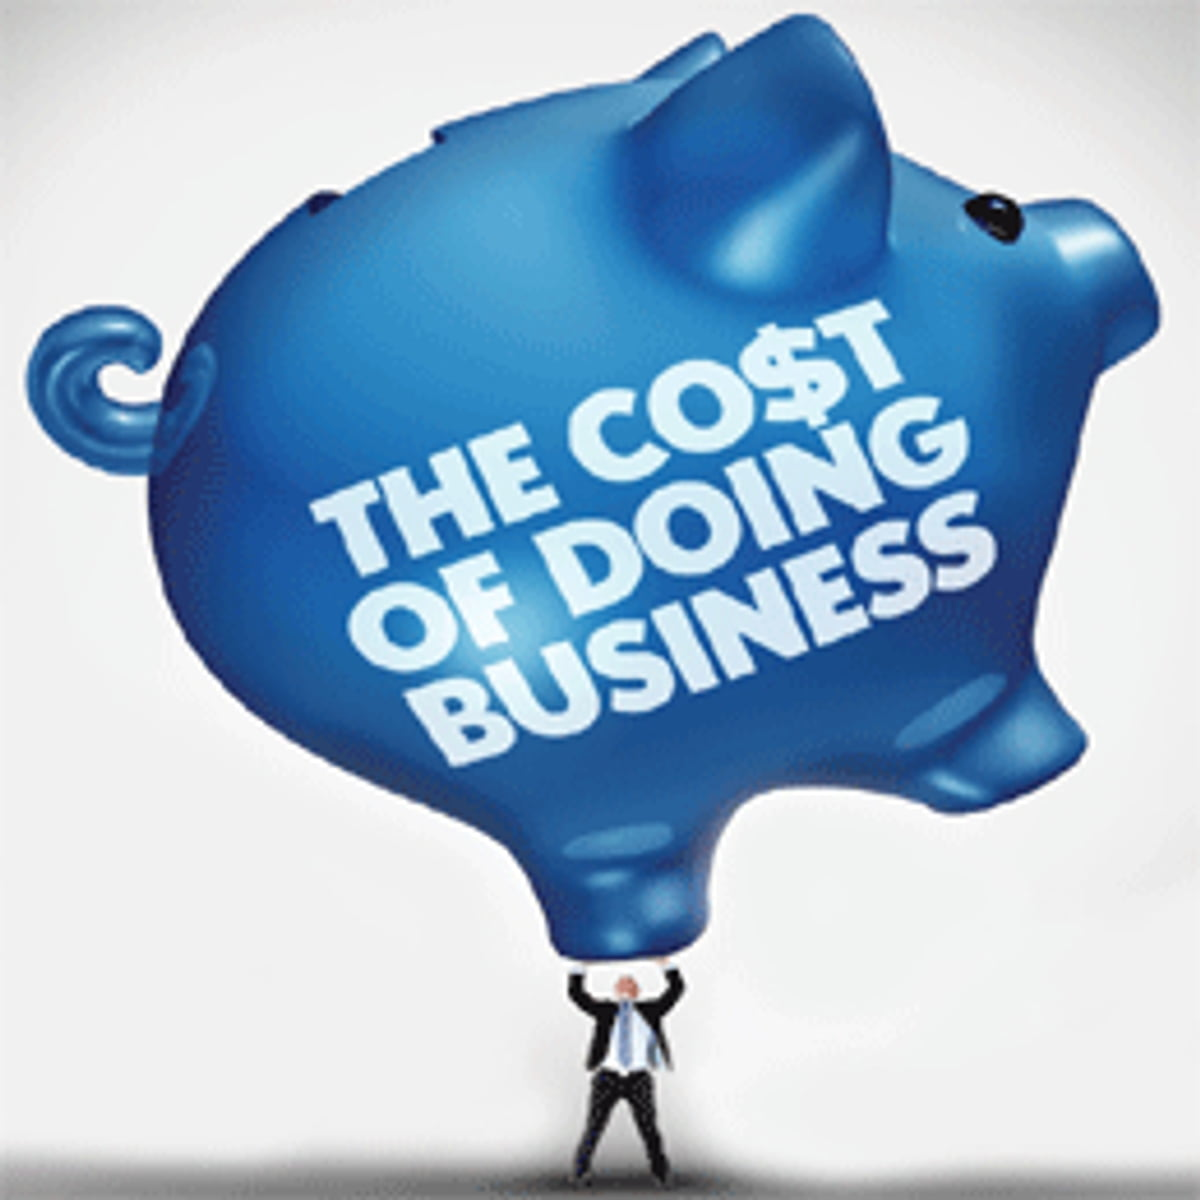 Cost of doing business монетка текст